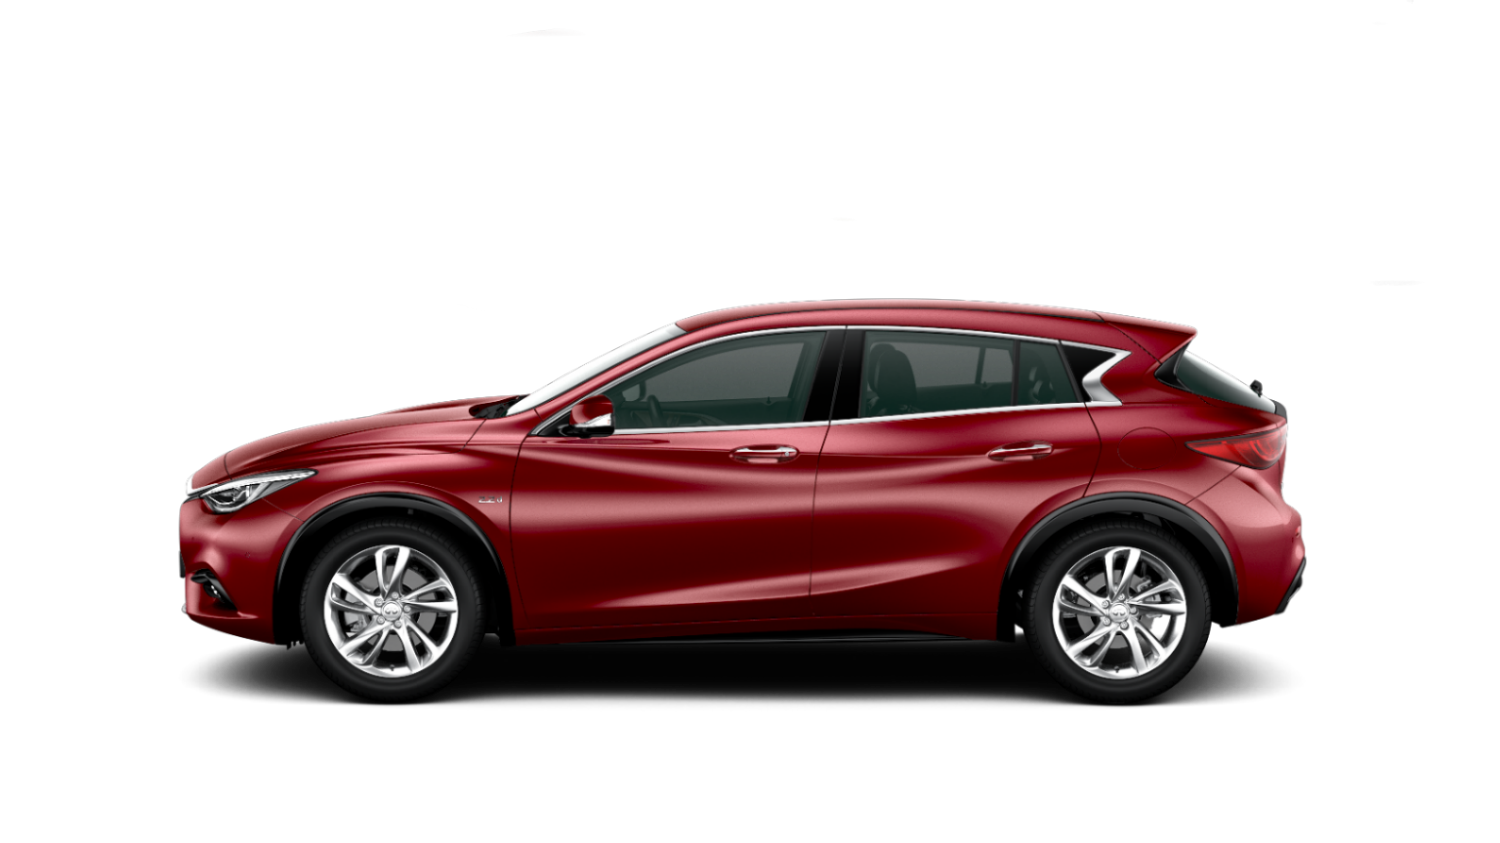 new infiniti cars models saloons coupes crossovers suv cars. Black Bedroom Furniture Sets. Home Design Ideas